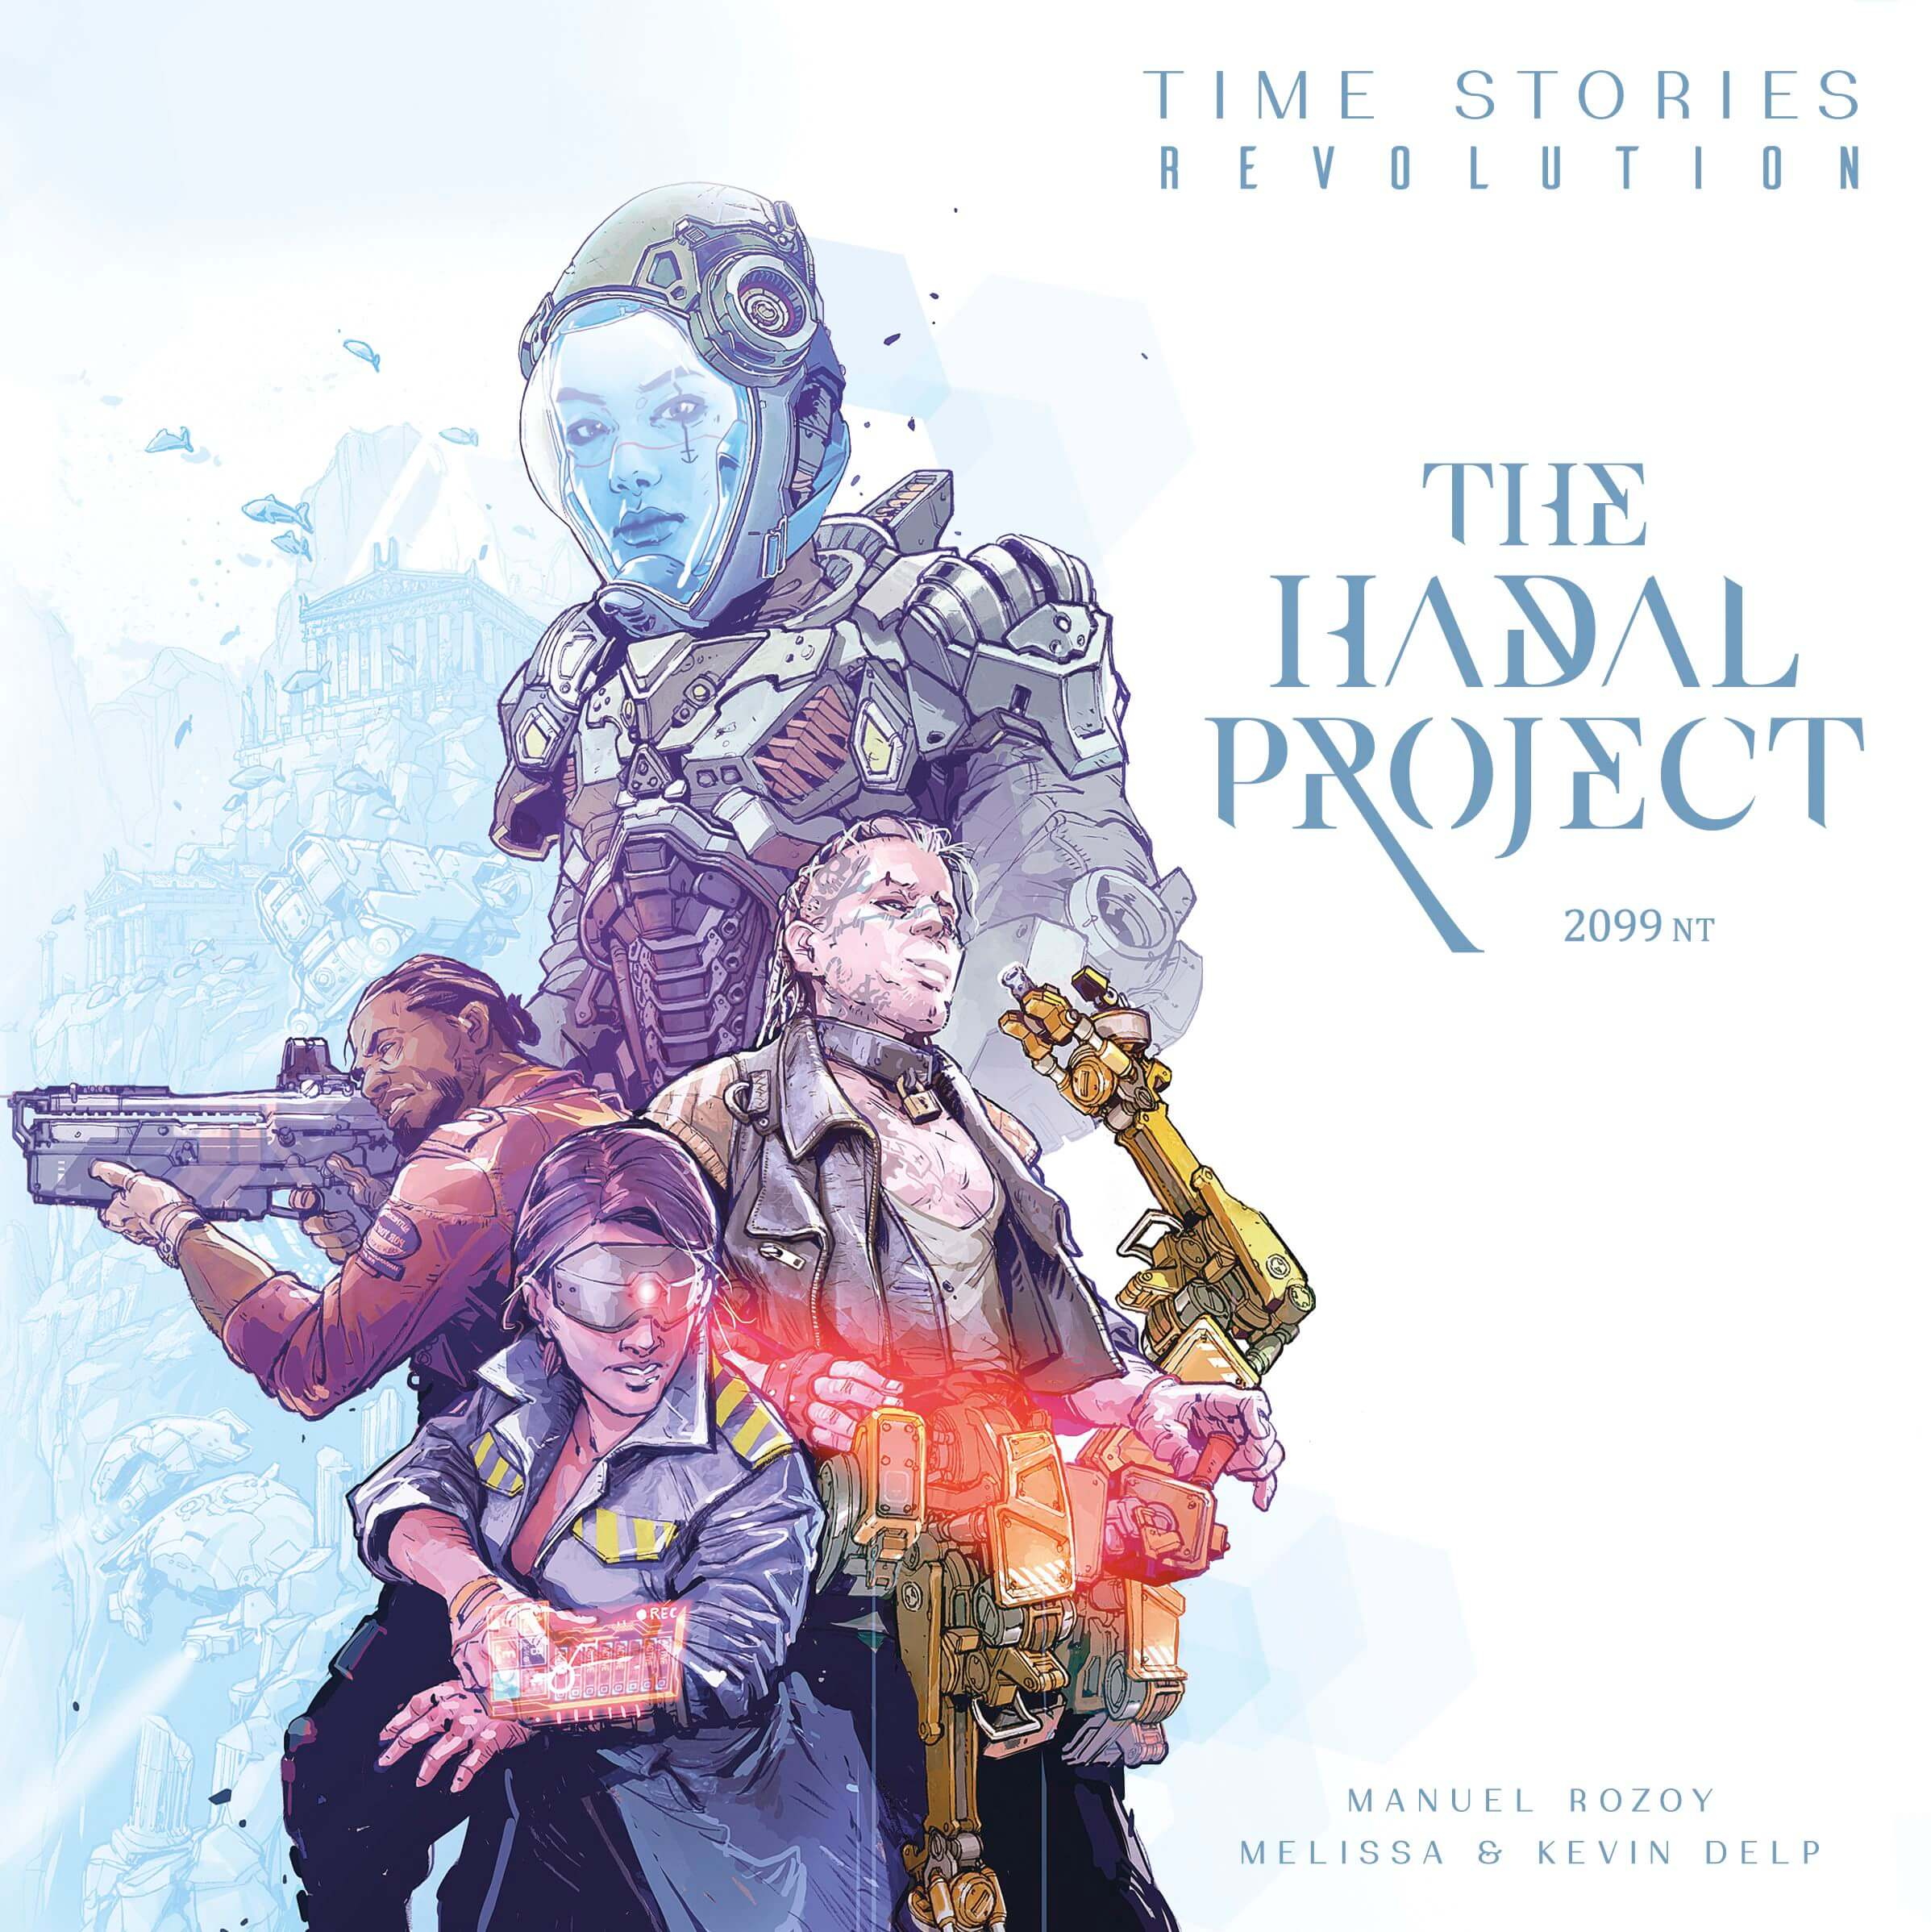 t-i-m-e-stories-the-hadal-project.jpg